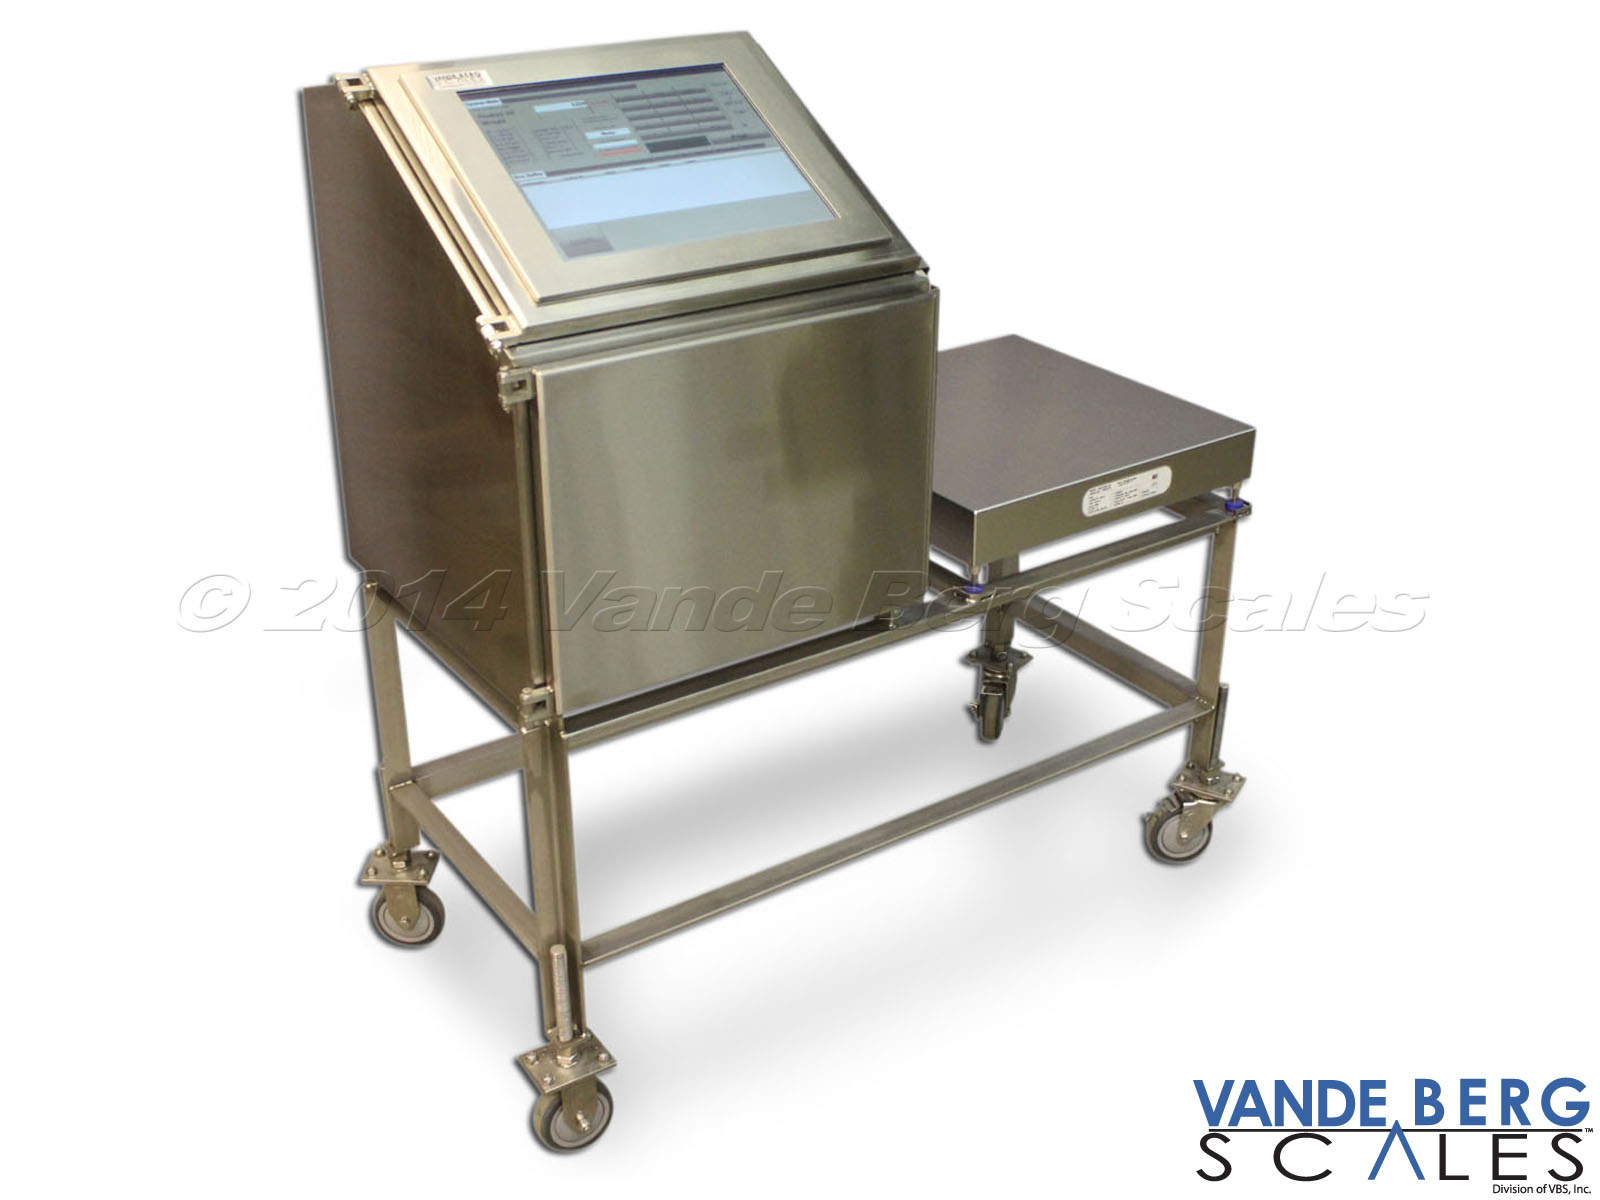 Mobile Cart used for a manual box labeling with HMI Interface and scale. Includes lockable wheel casters.